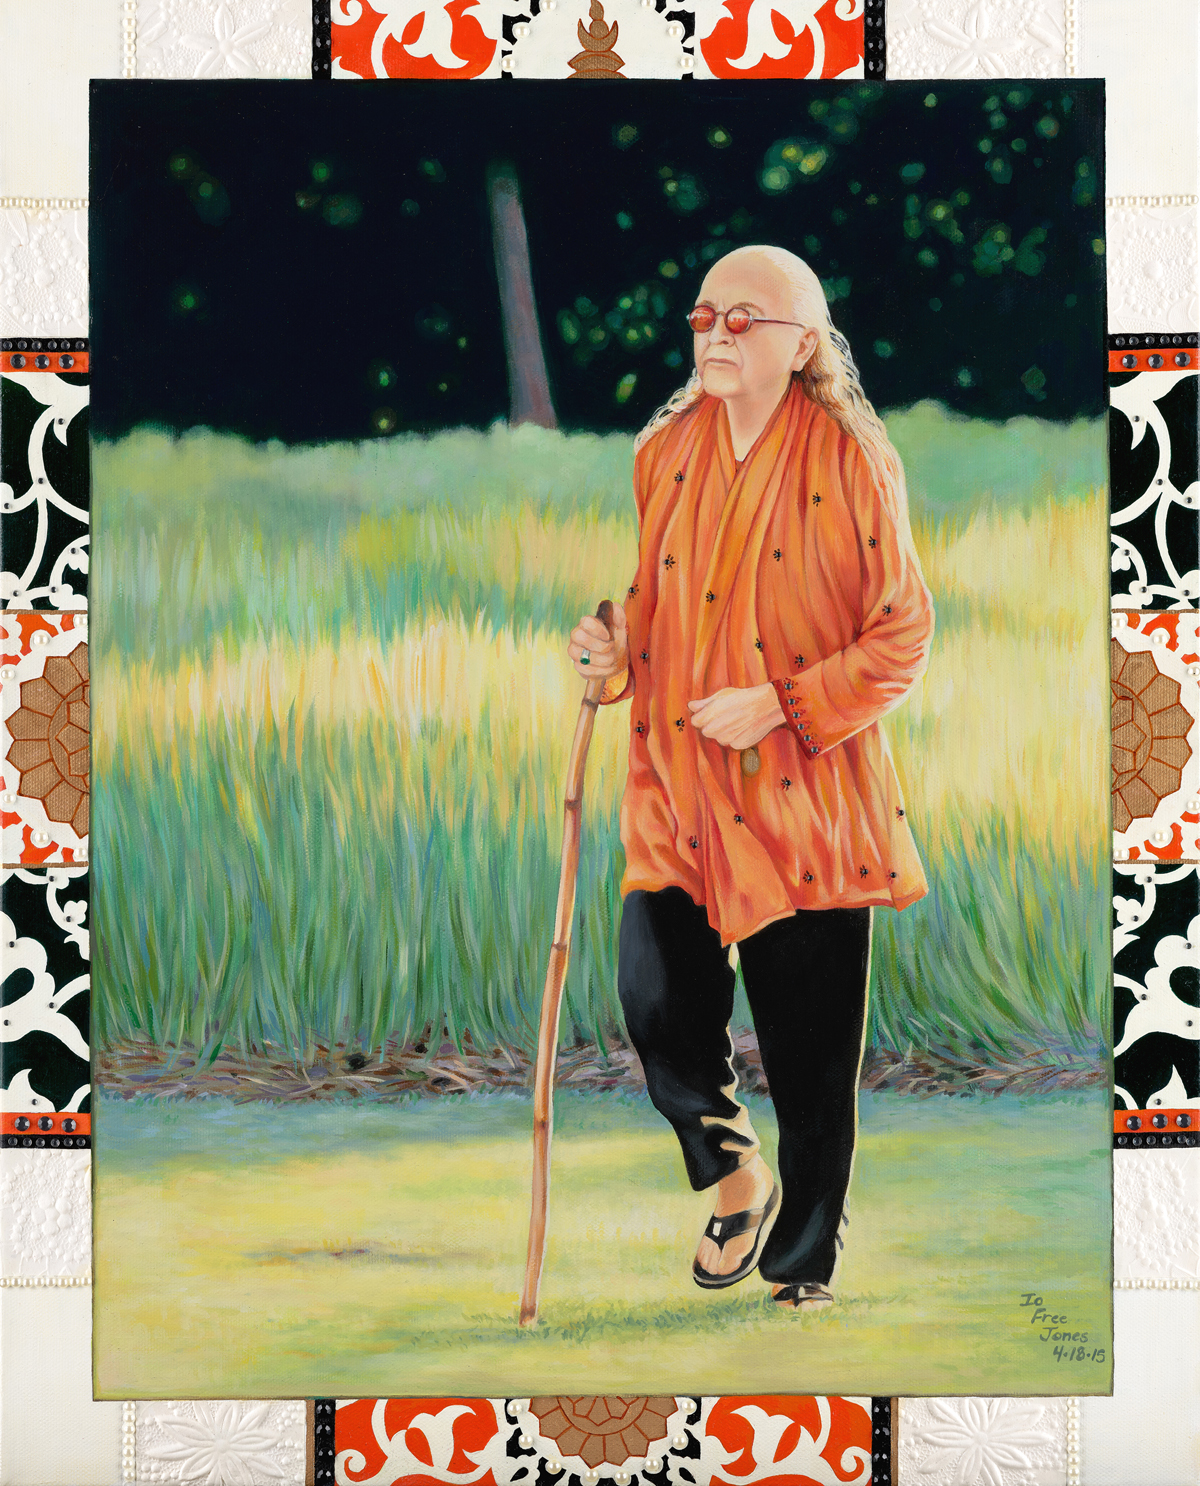 Bhagavan Adi Da Walking in the Brightness Meadow, 2015